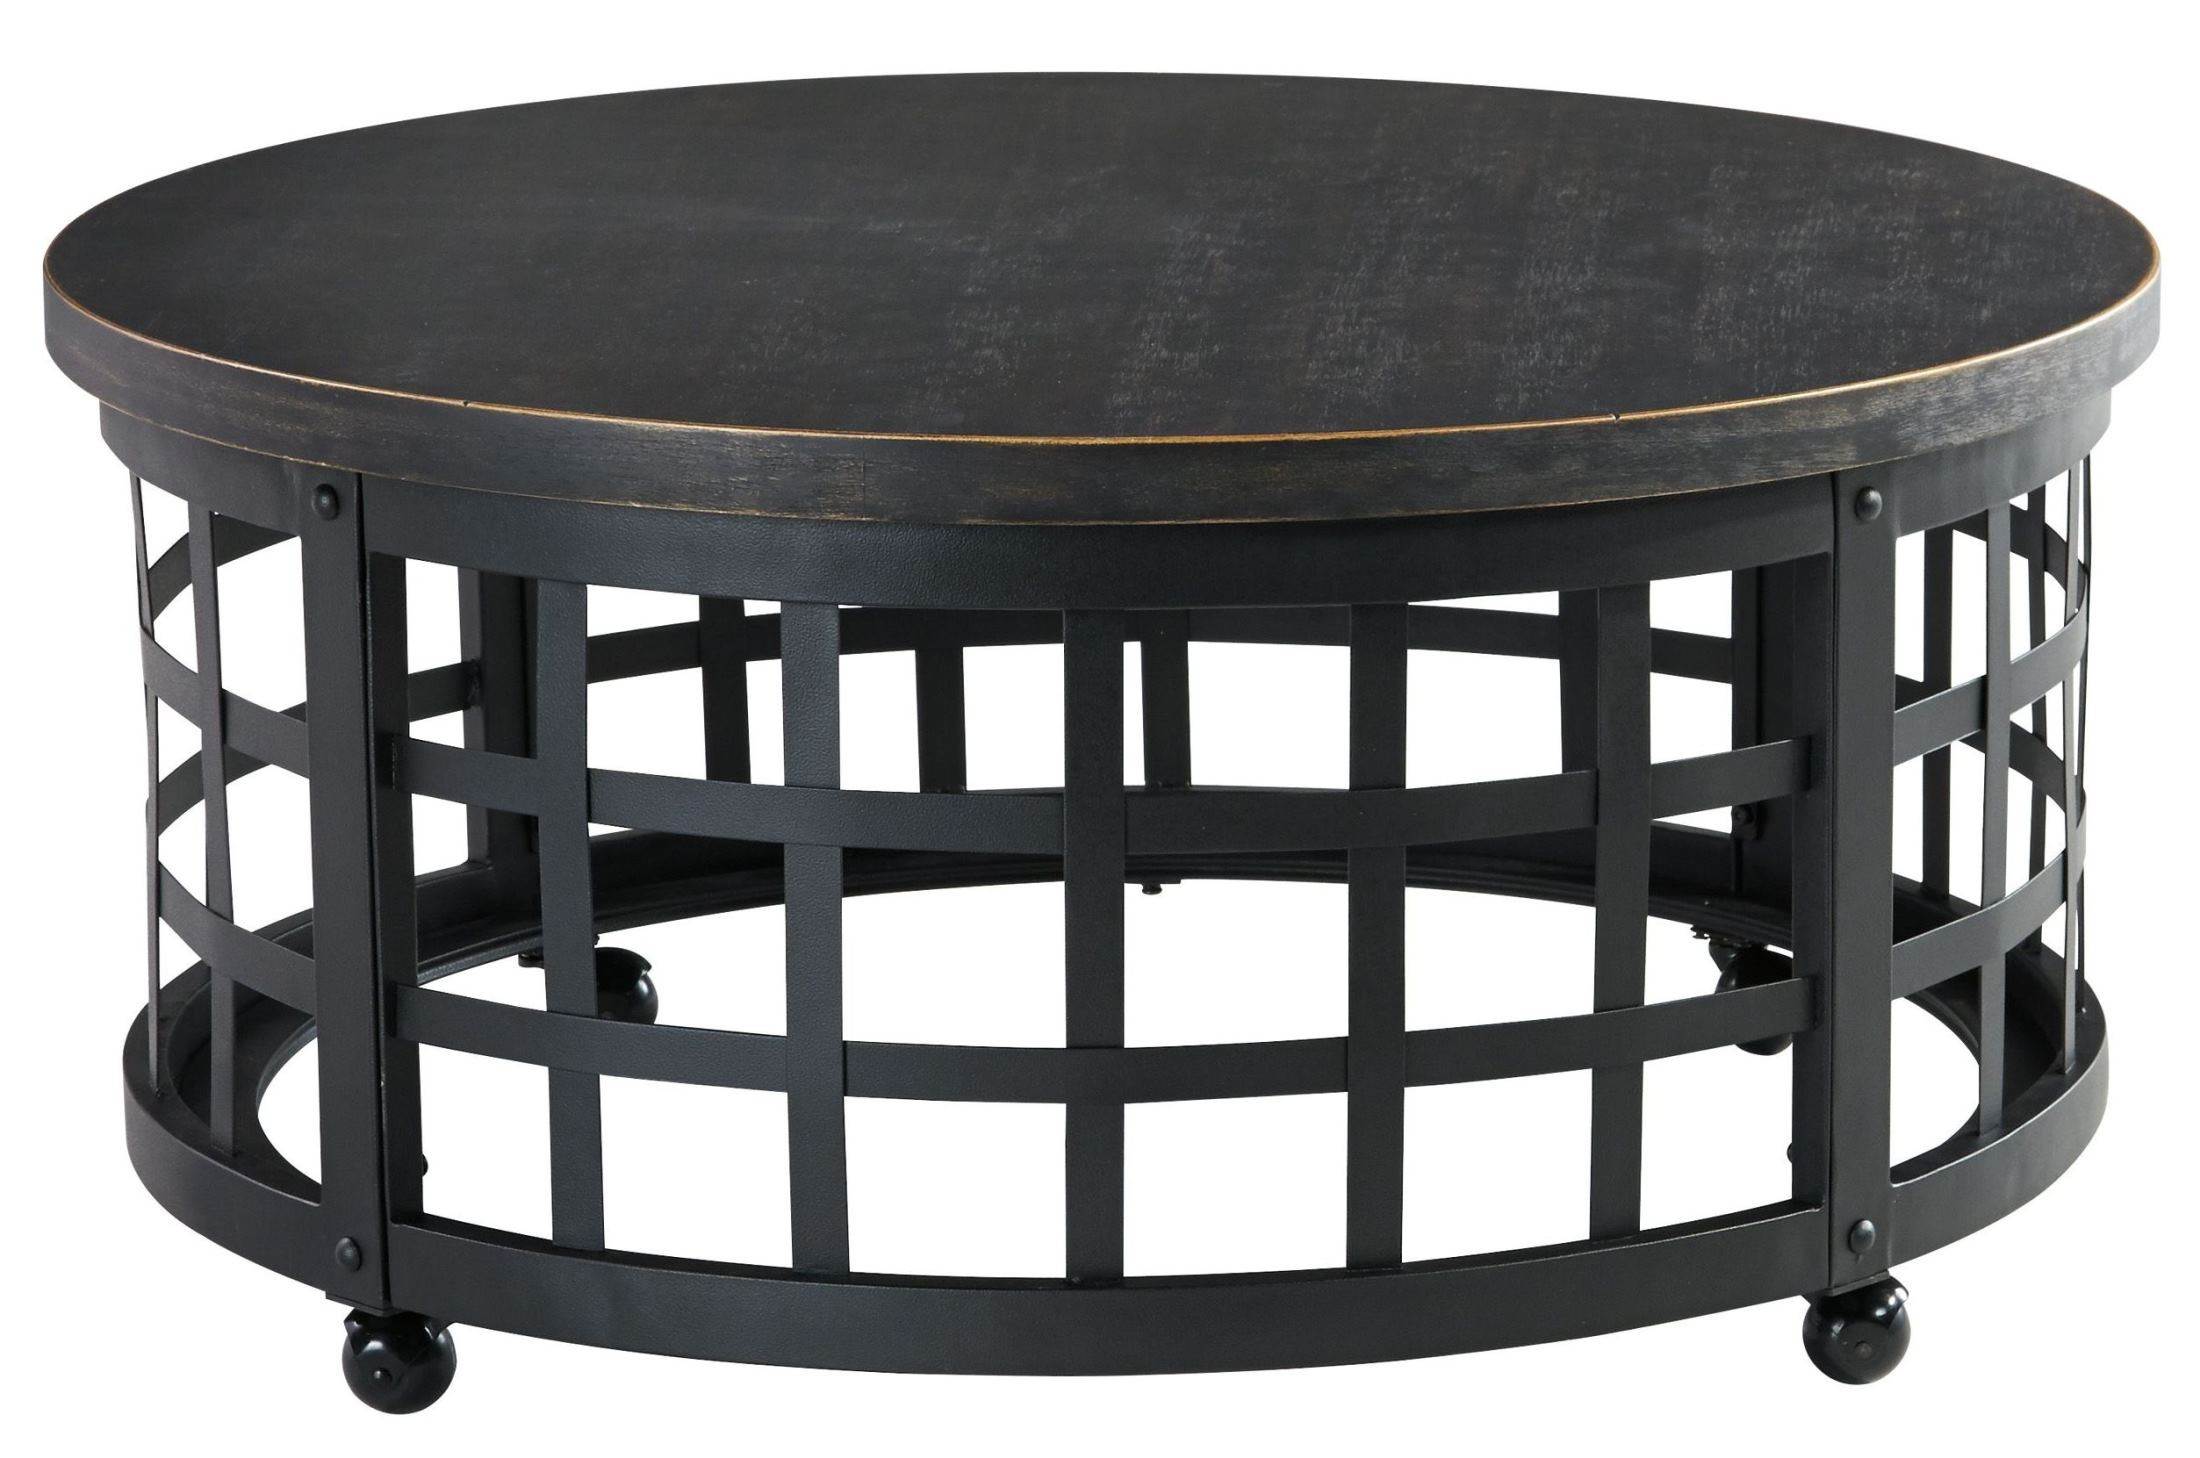 Marimon round cocktail table from ashley t746 8 for Cocktail tables round